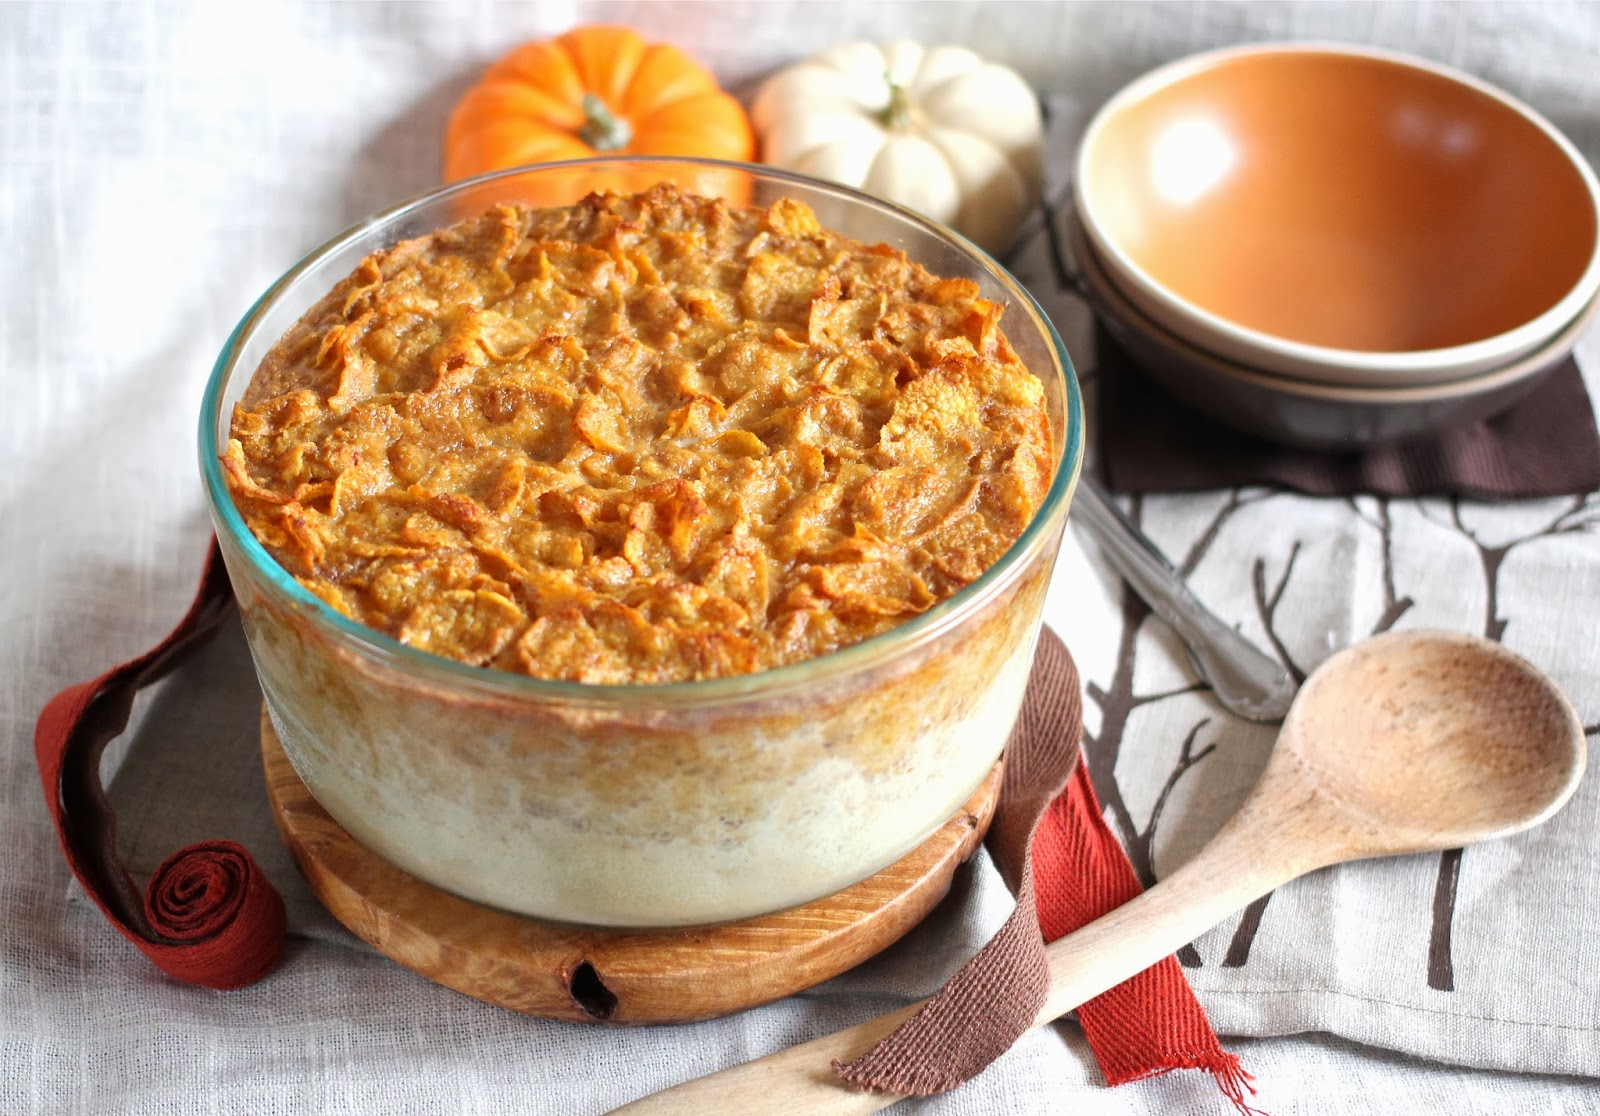 Arctic Garden Studio Pumpkin Cornflake Breakfast Pudding